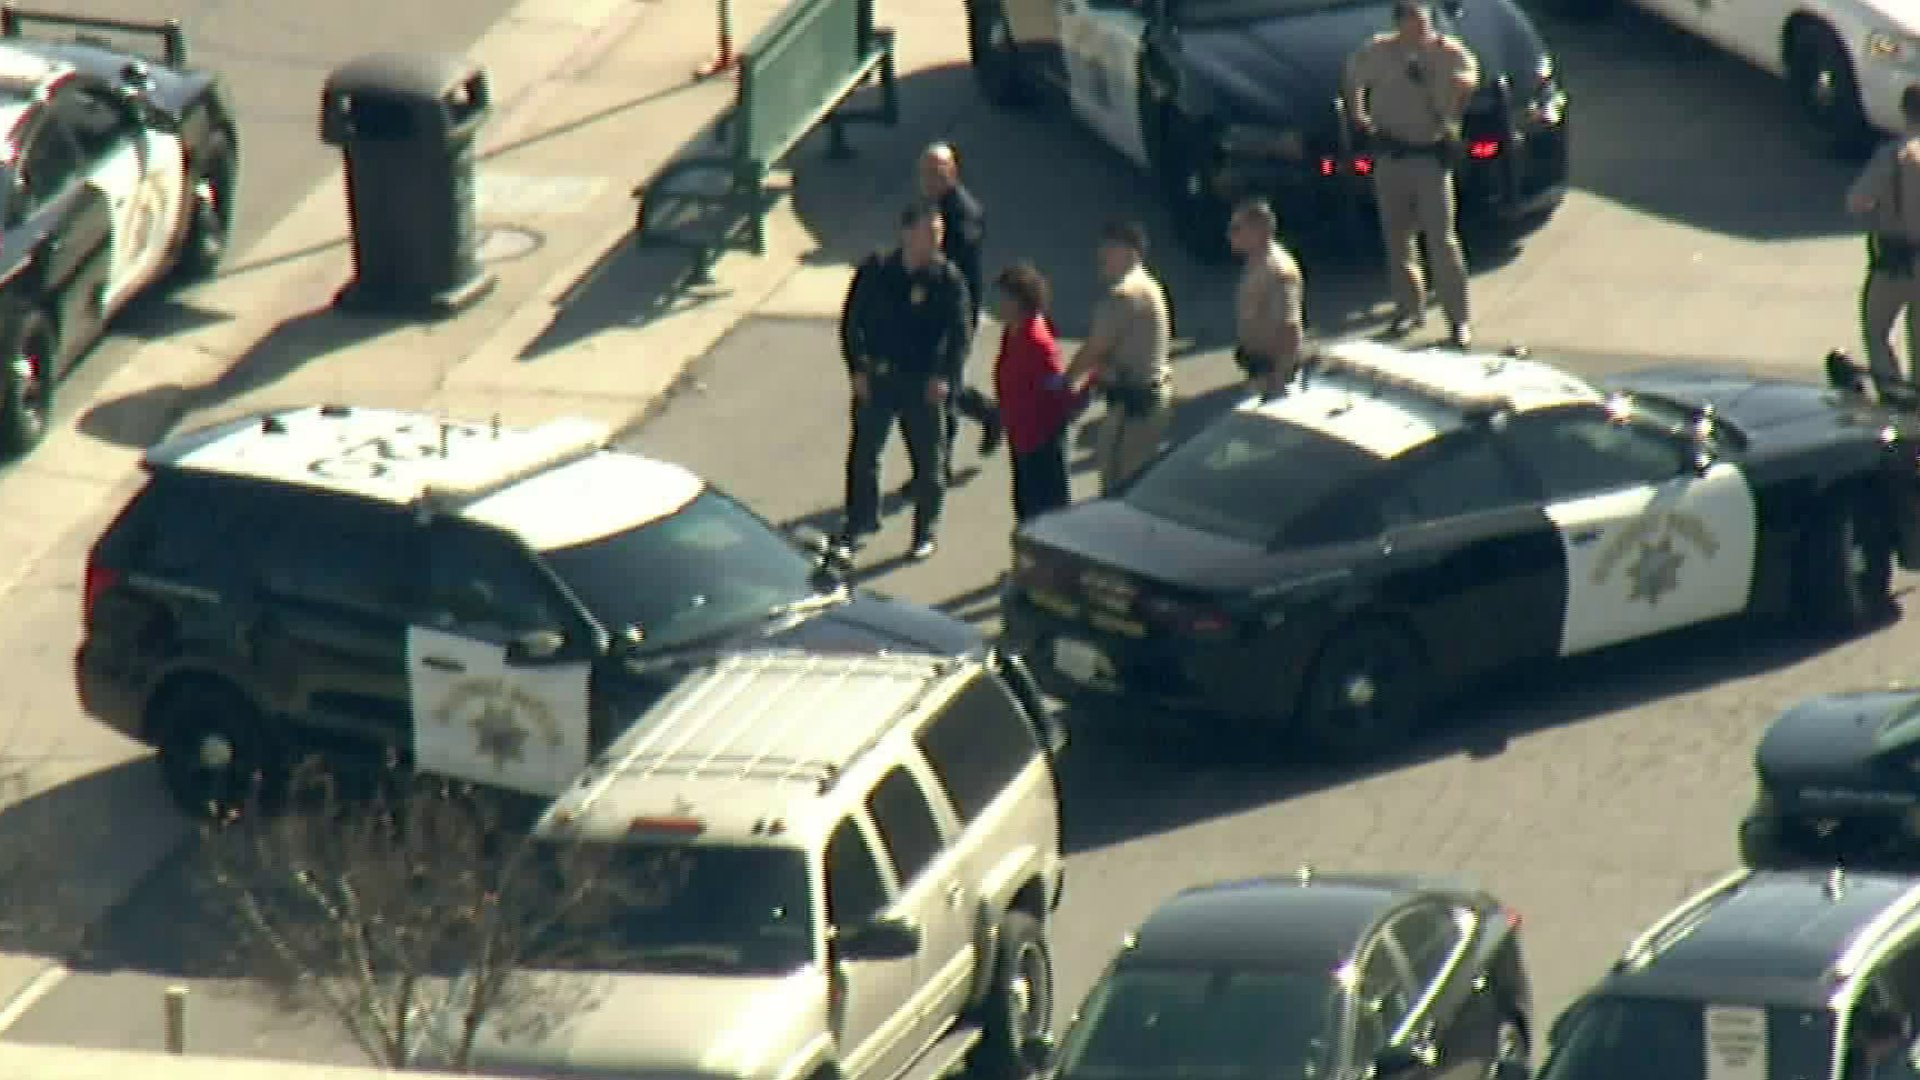 Officers take a suspected pursuit driver into custody outside an America's Tire location in Canoga Park on Jan. 28, 2020. (Credit: KTLA)